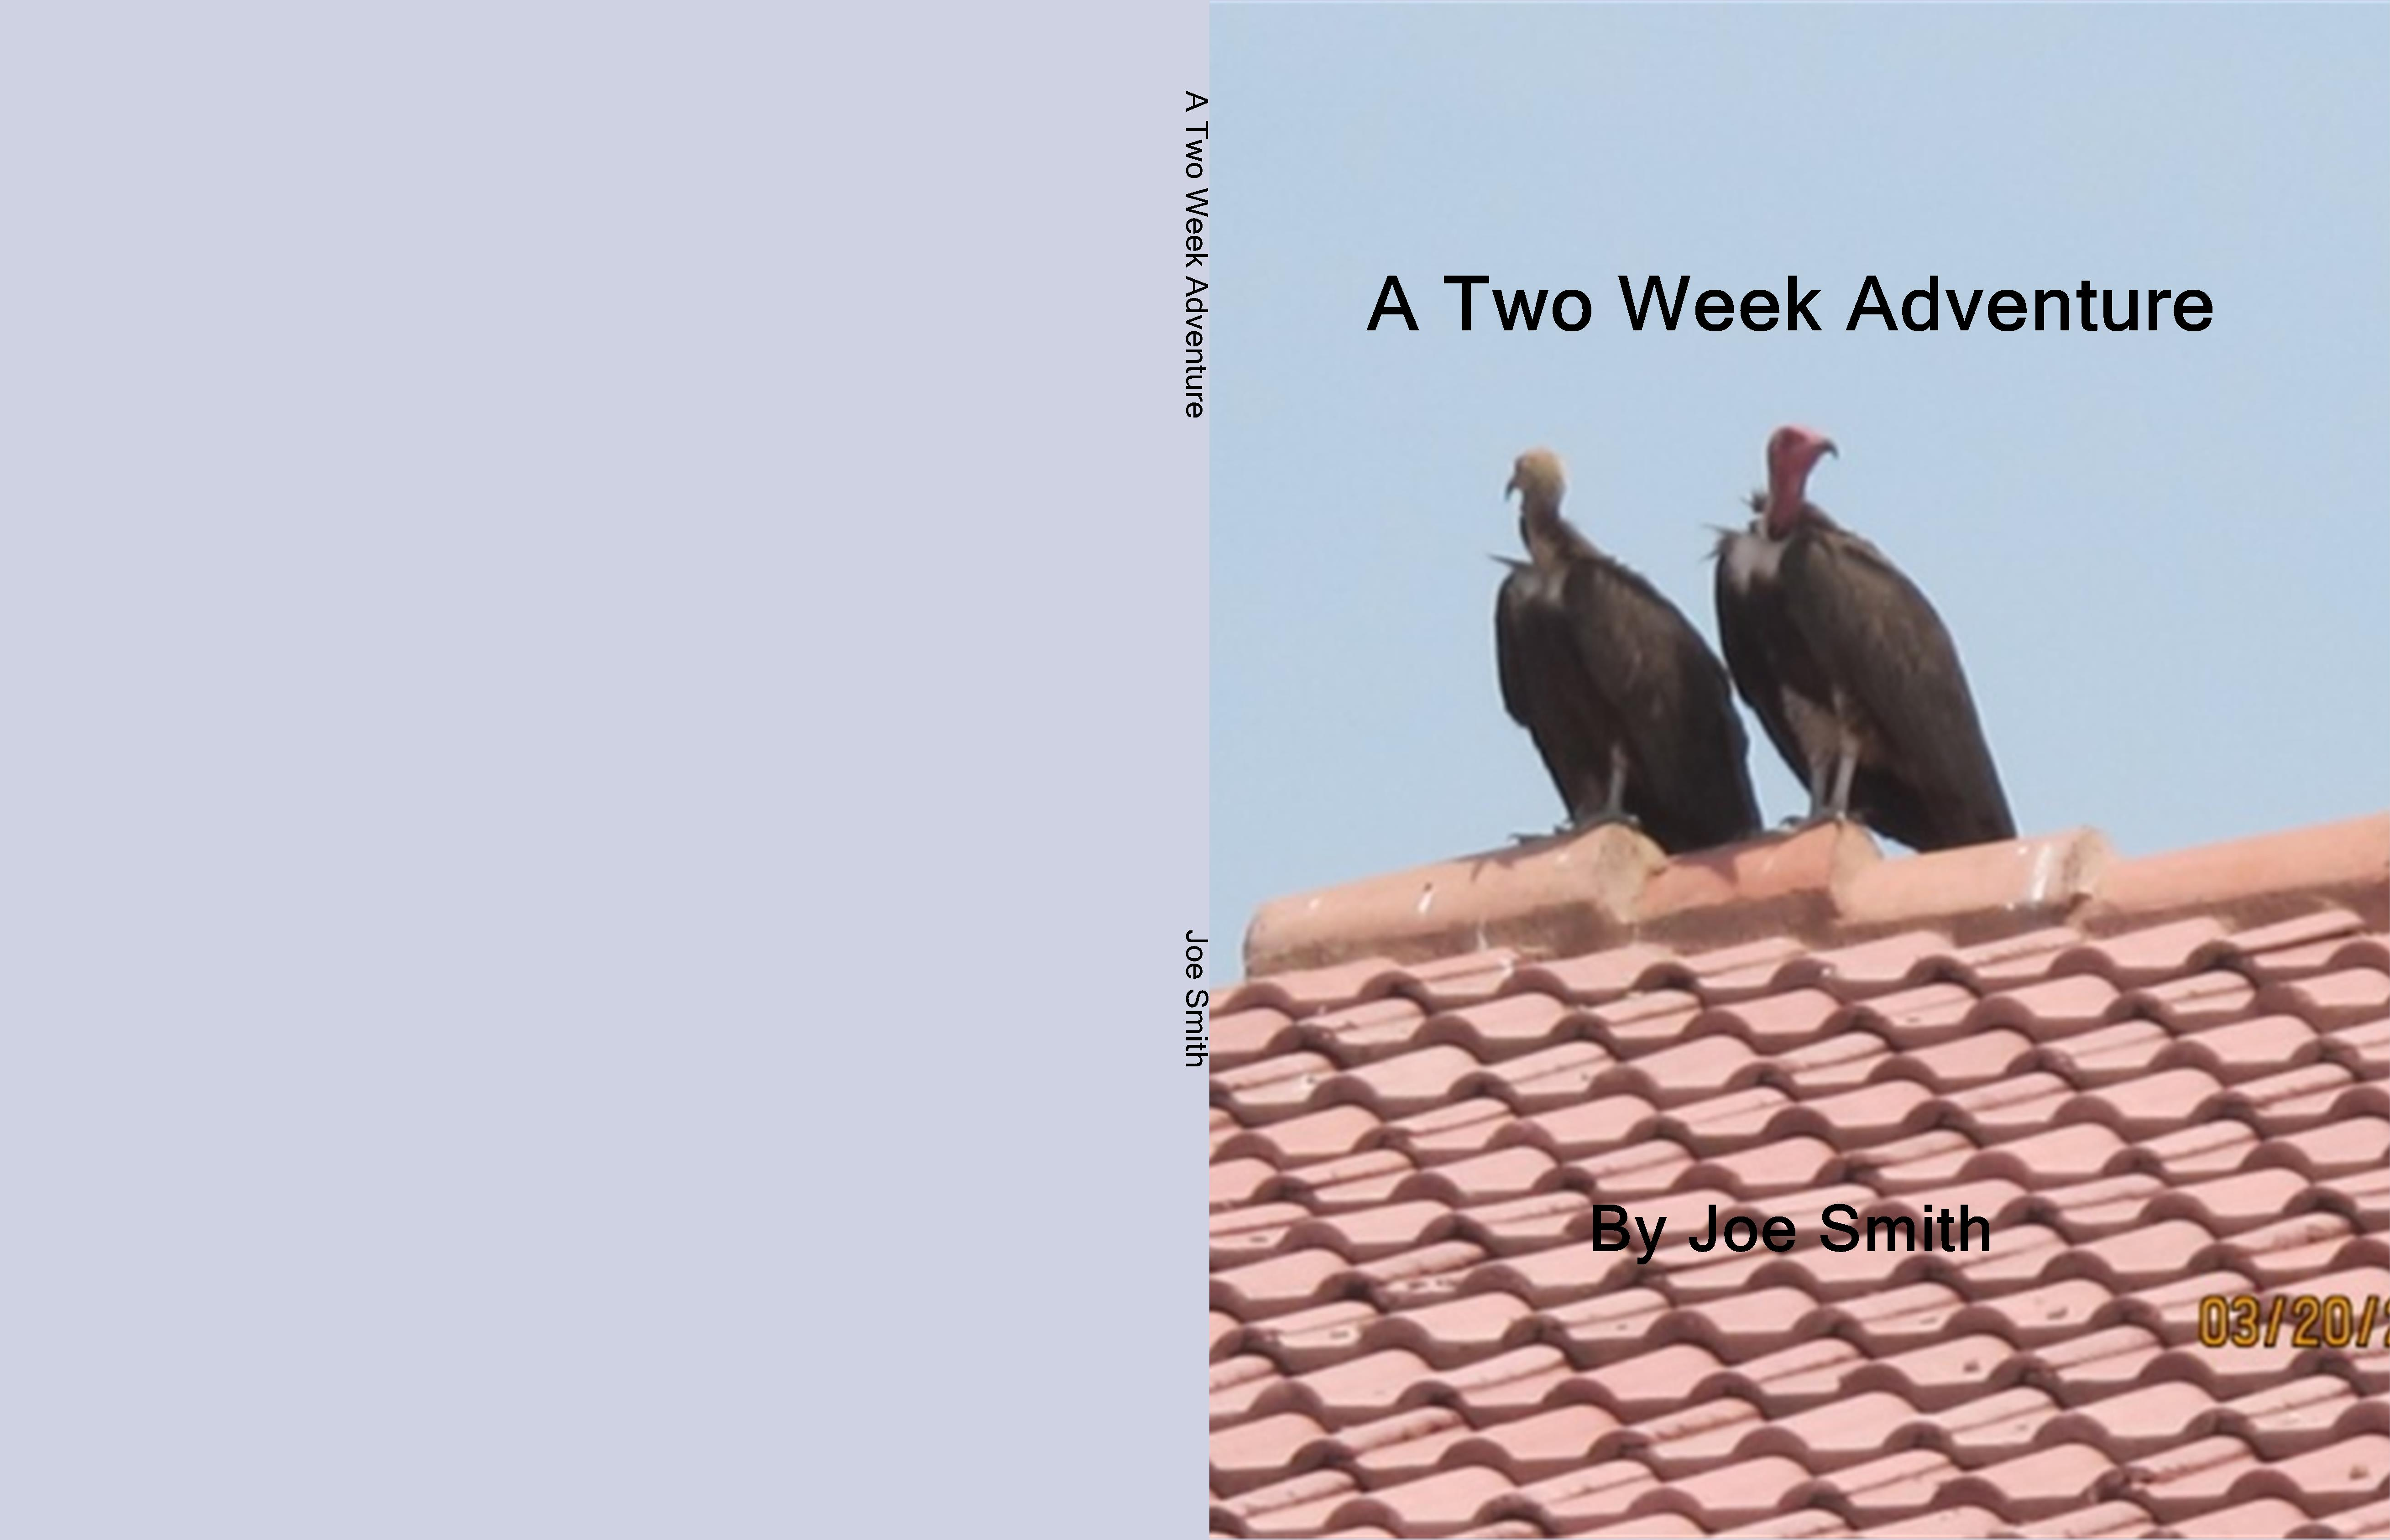 A Two Week Adventure cover image